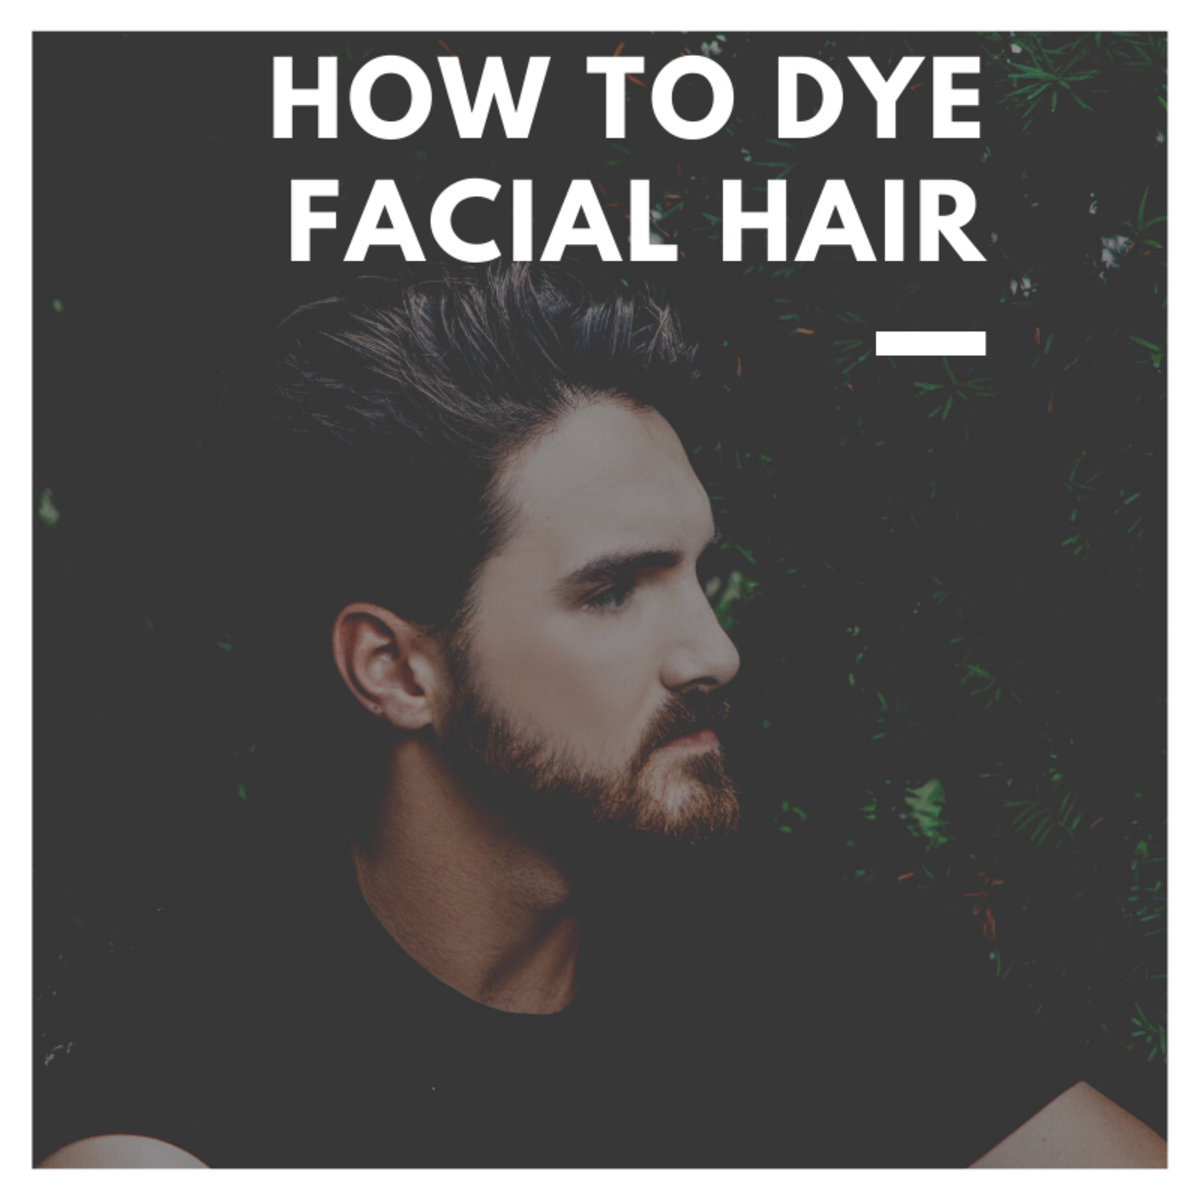 This article explores all you need to know about dyeing facial hair.